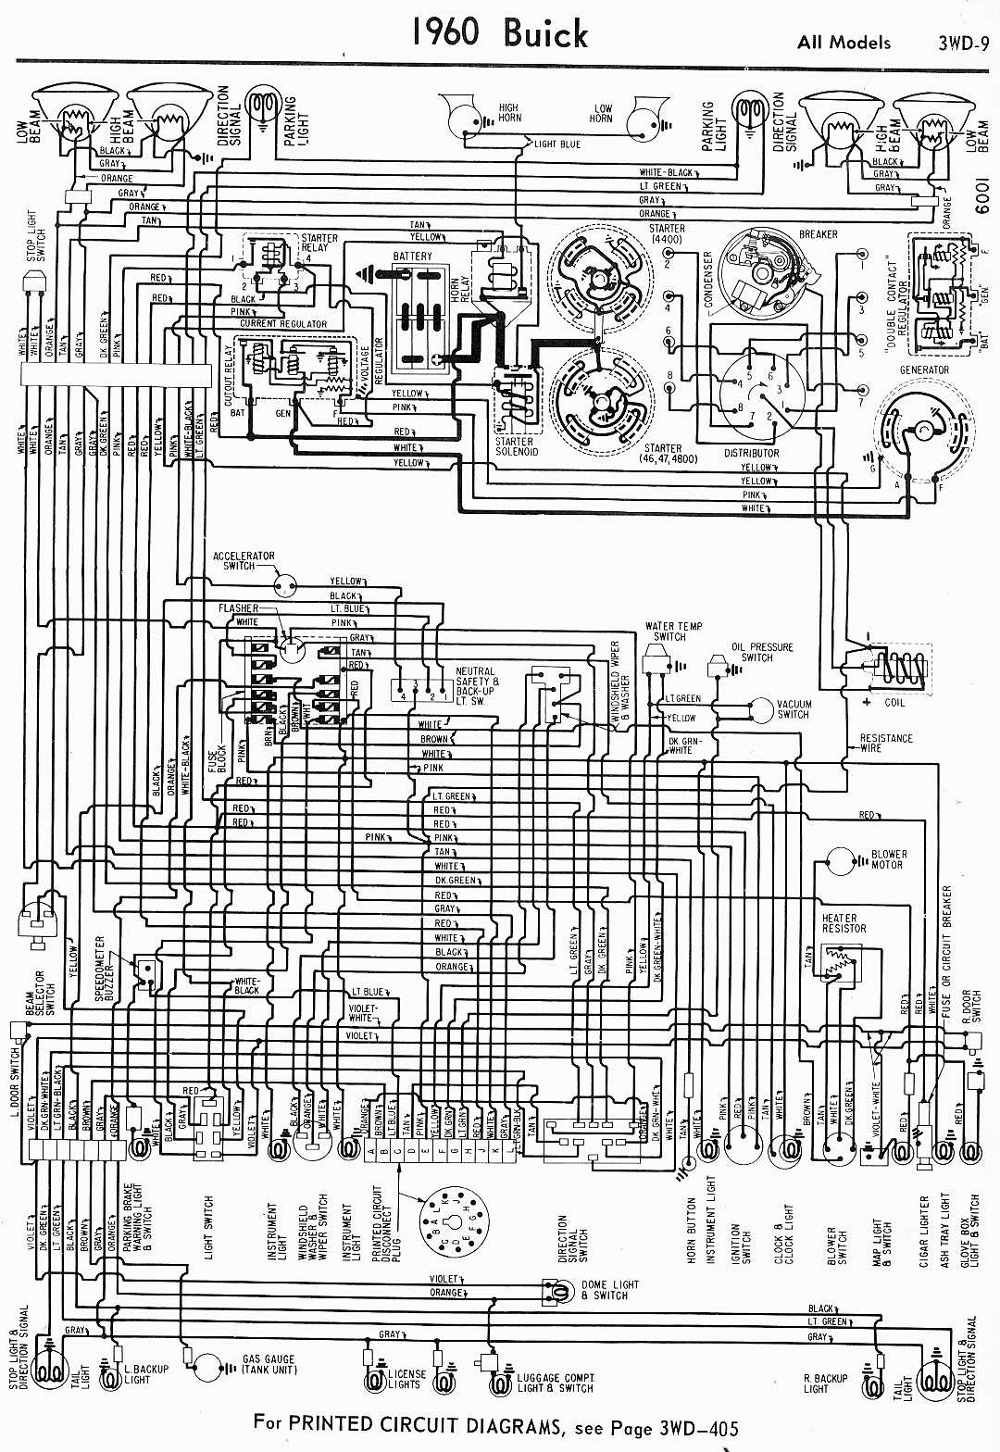 Wiring Diagrams Of 1960 Buick All Models Classic Chevrolet Diagram Chevrolet